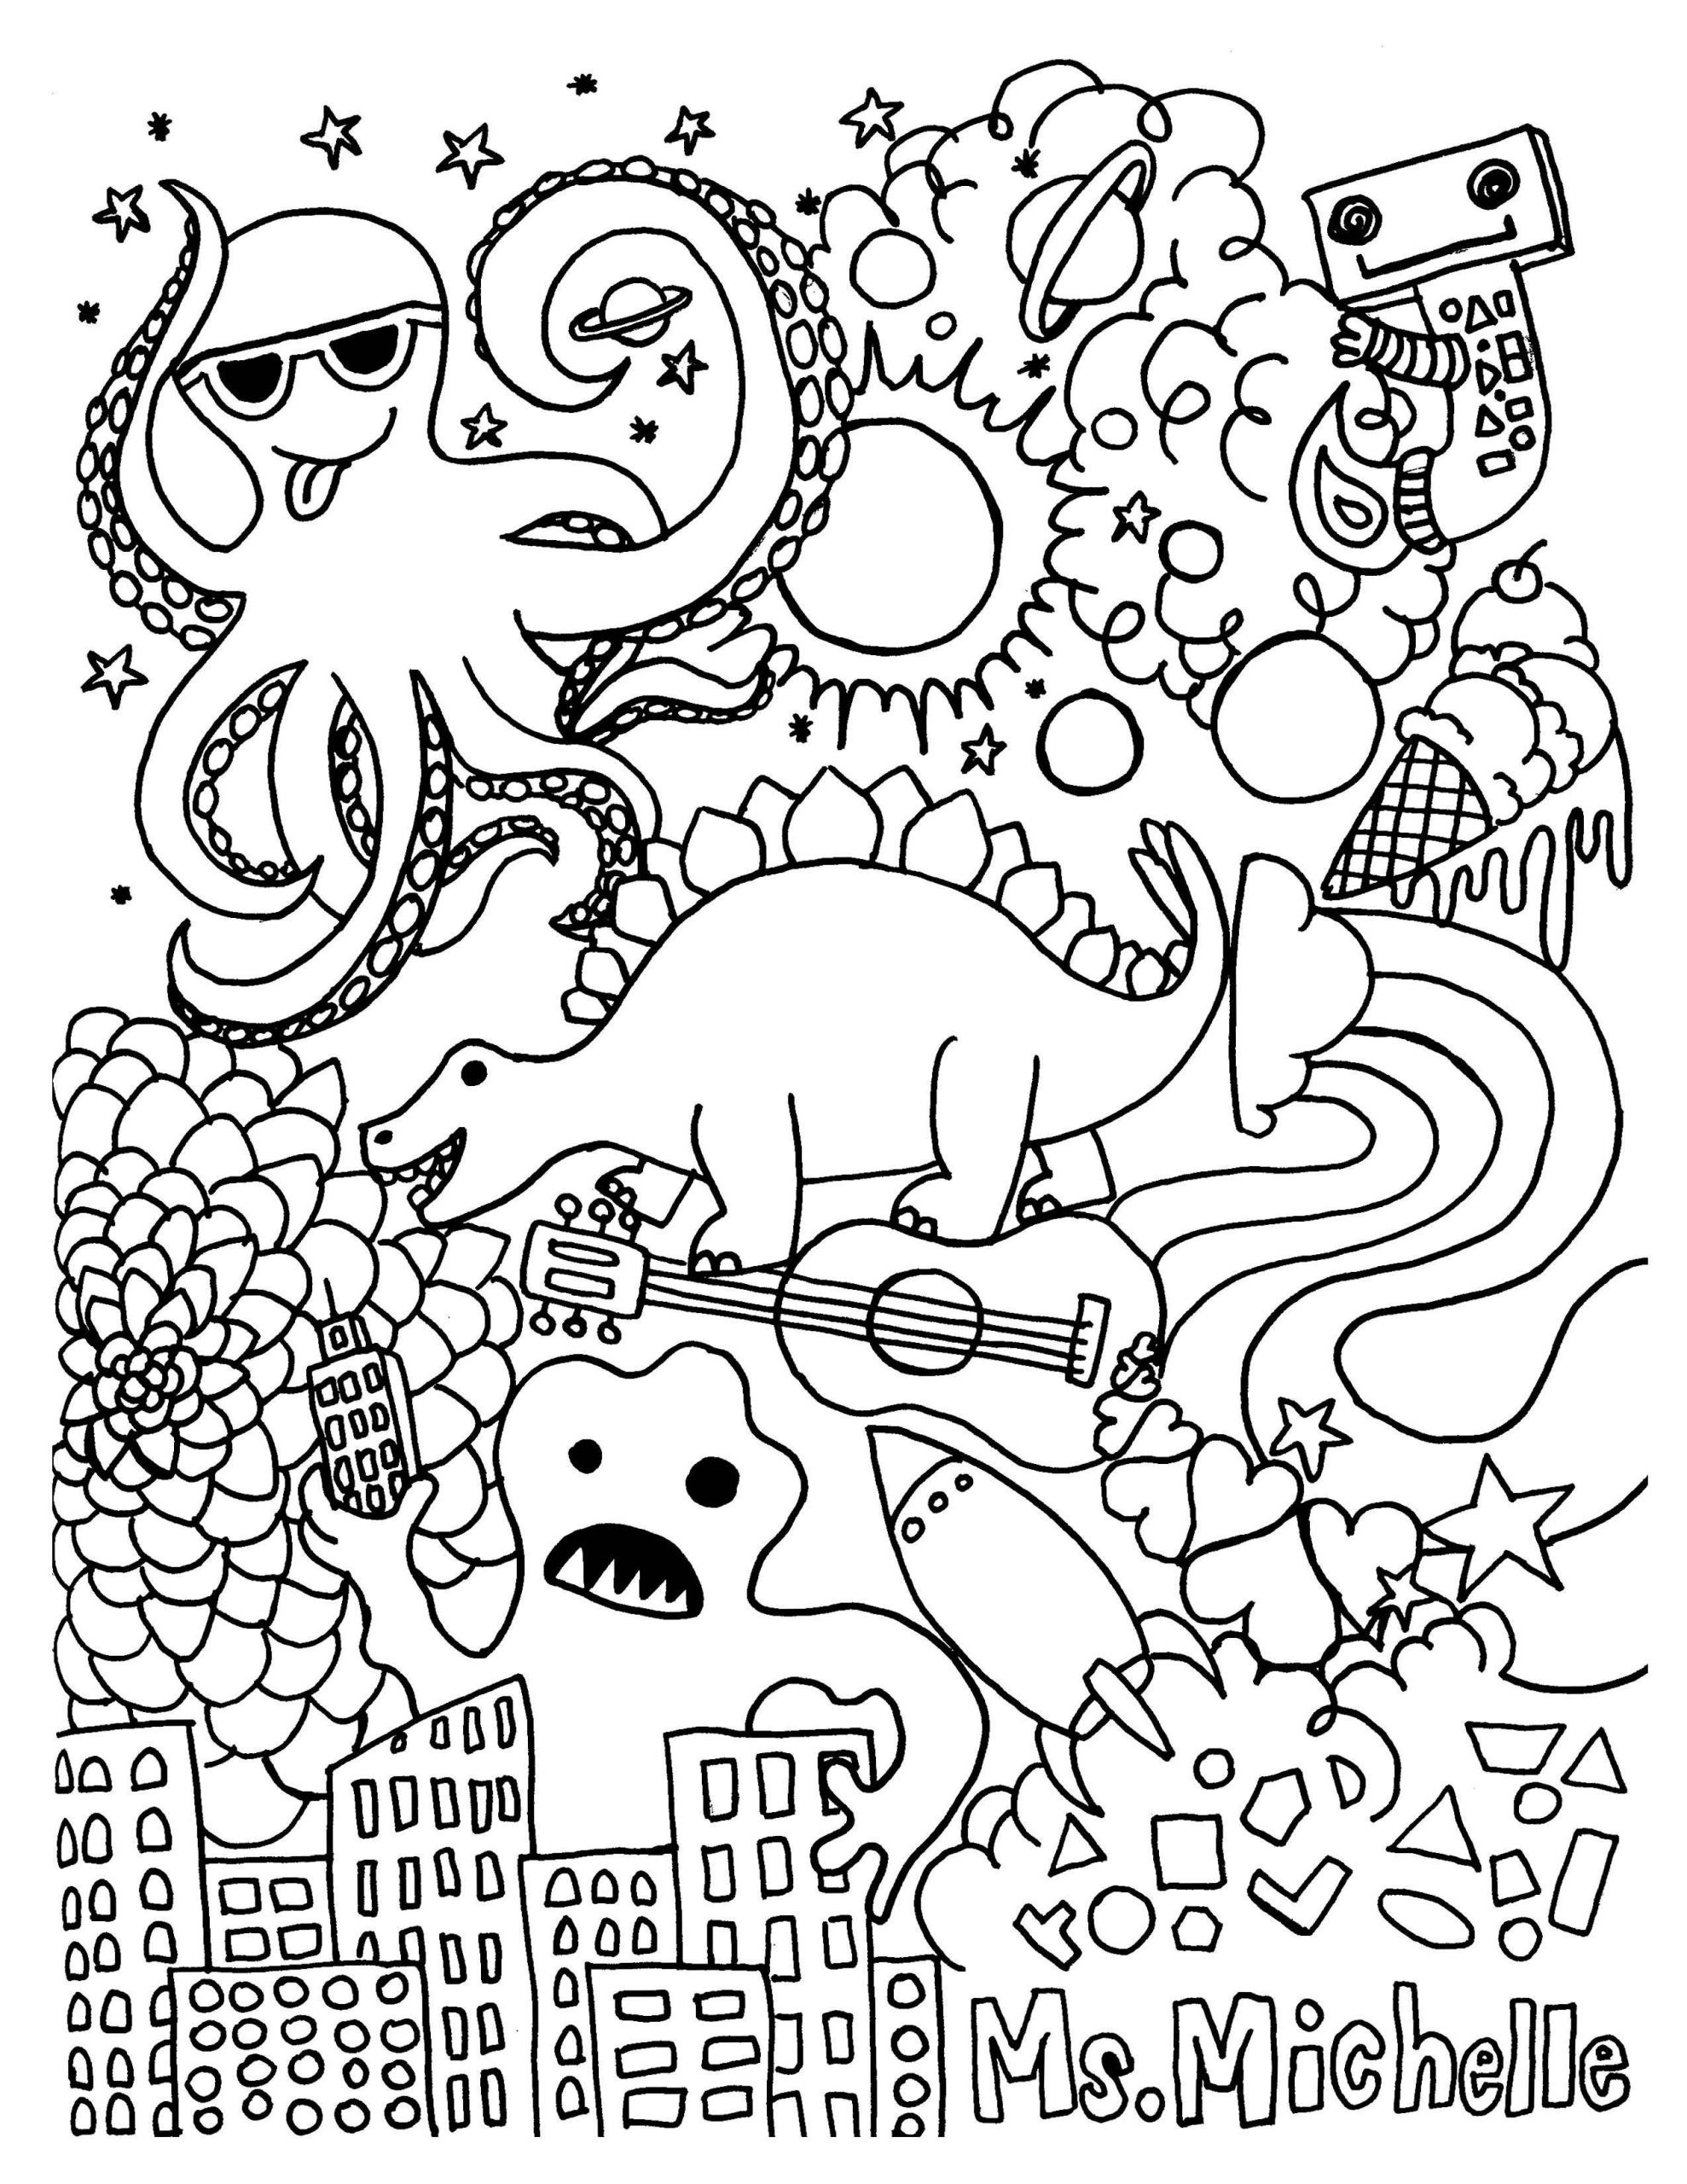 Germ Worksheets for First Grade Worksheet Ideas Coloring astonishing 1st Grade Germs